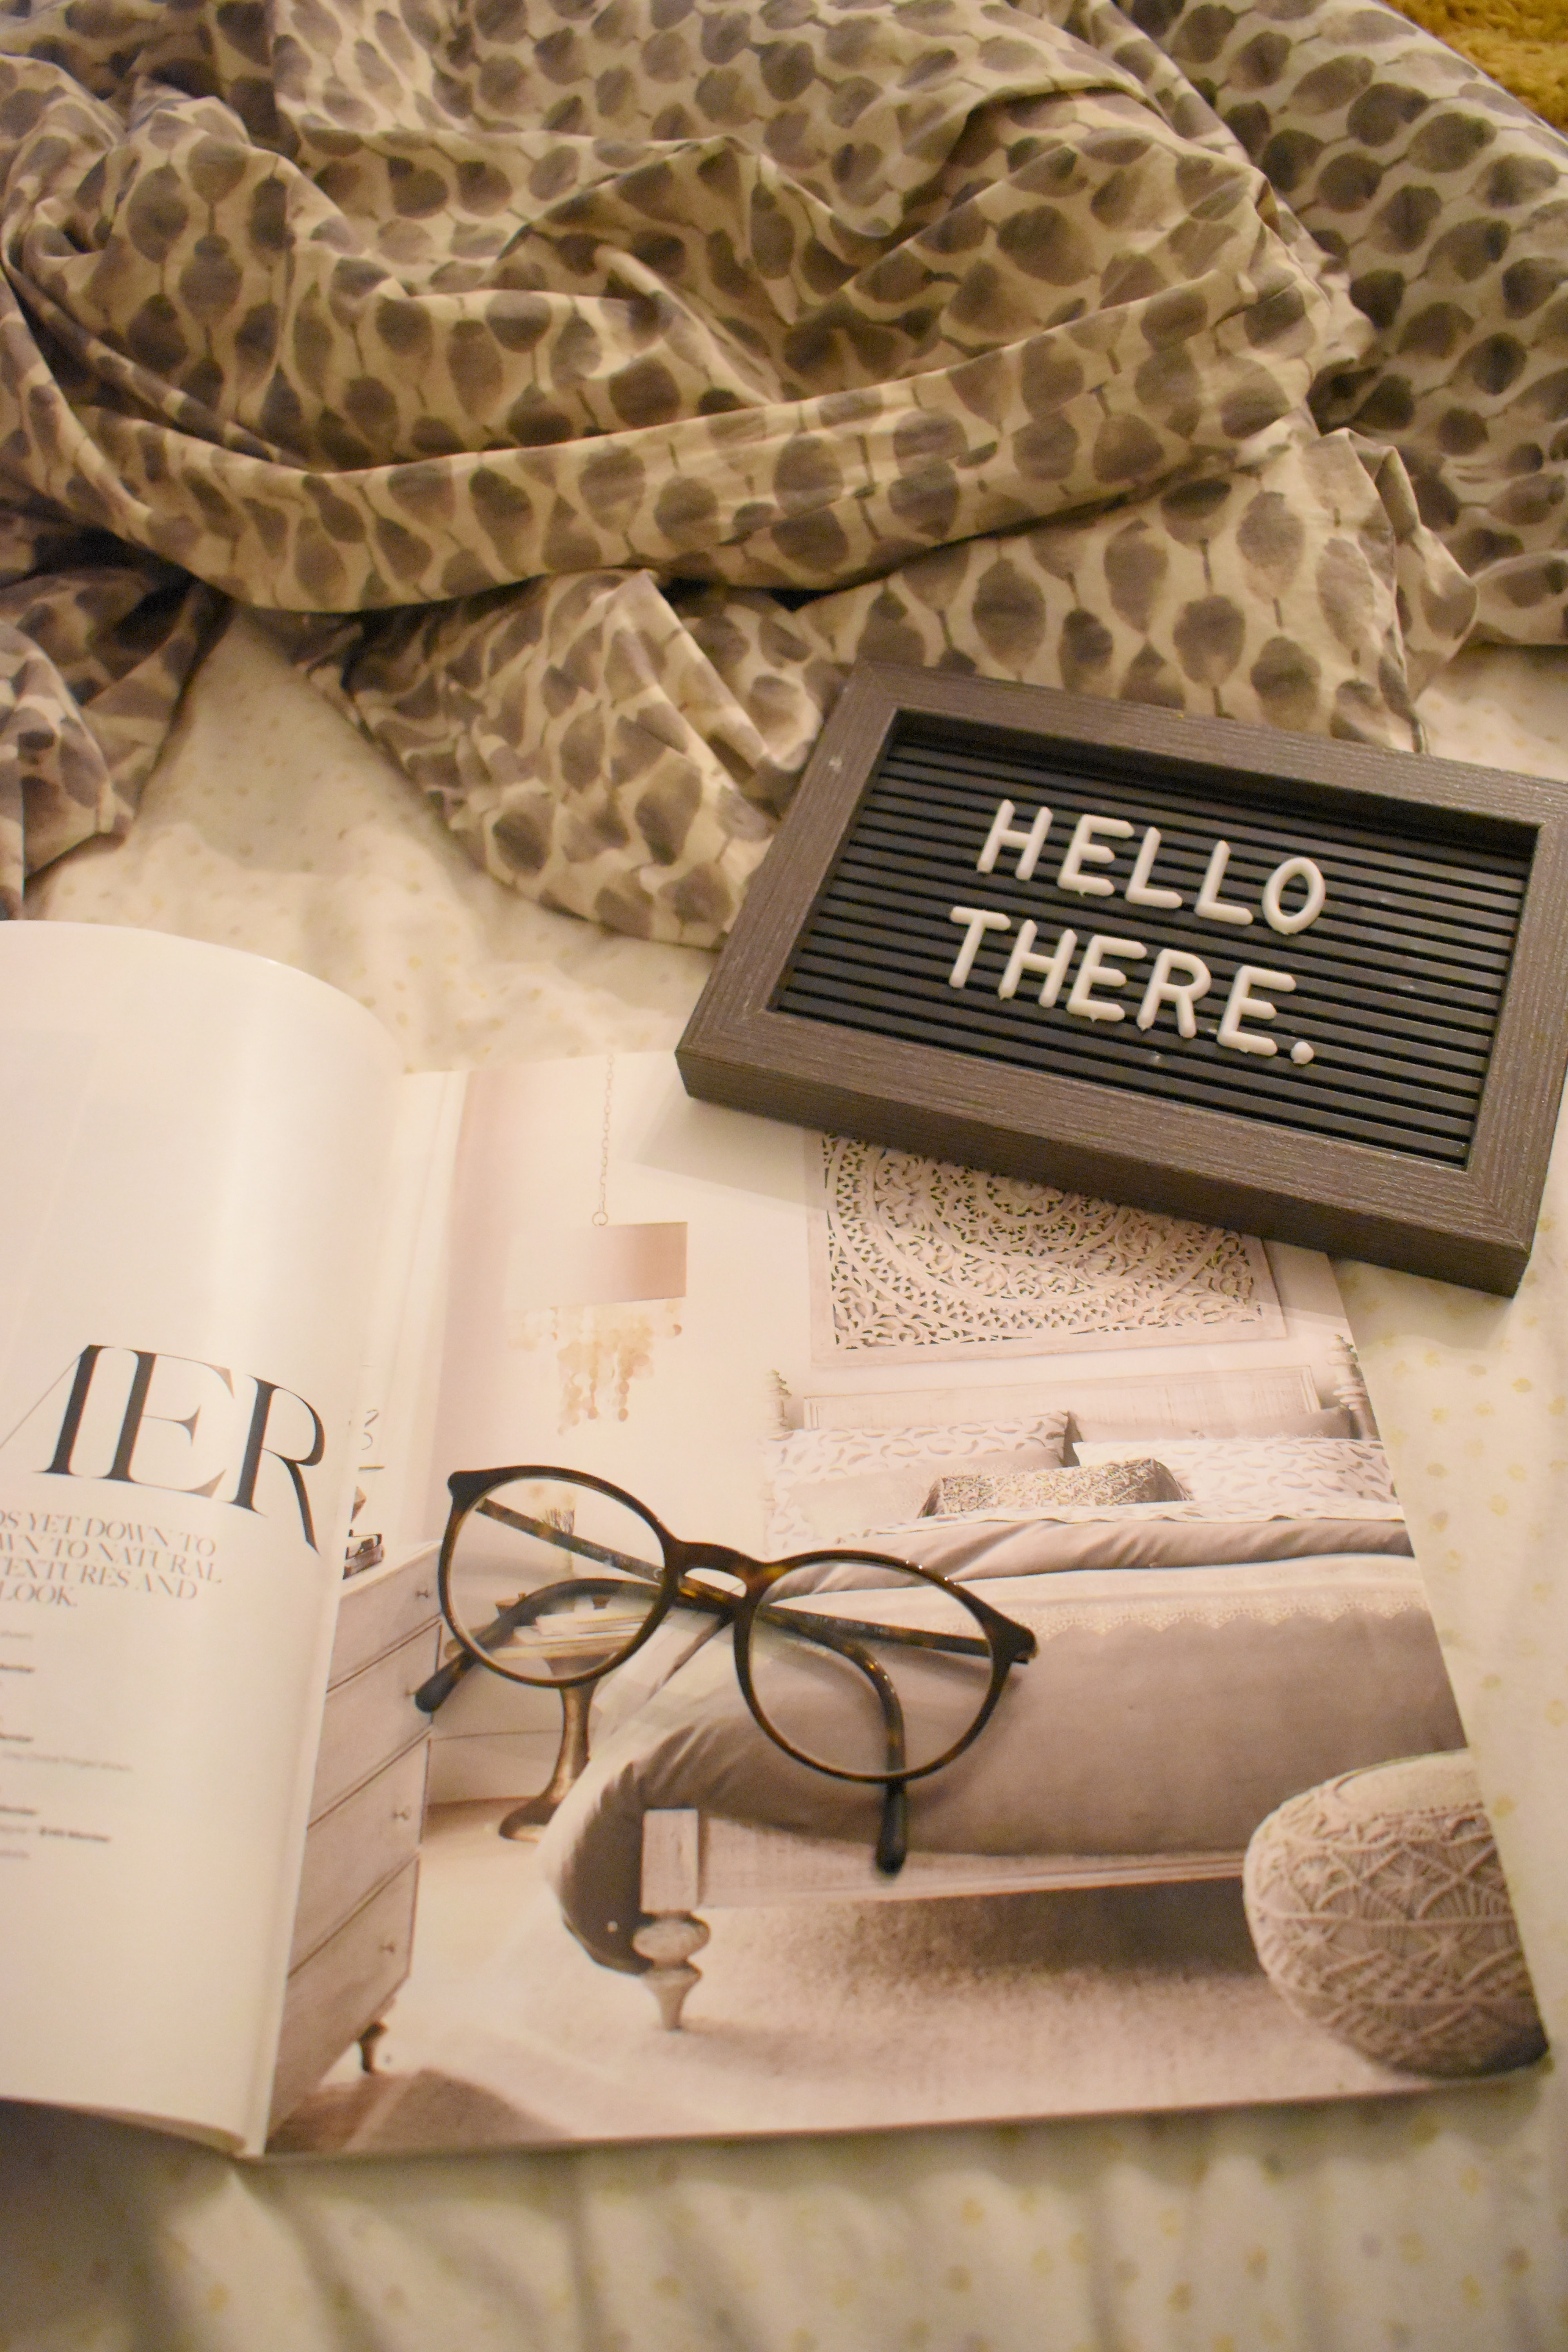 133776 download wallpaper Miscellanea, Miscellaneous, Magazine, Journal, Glasses, Spectacles, Inscription, Words screensavers and pictures for free